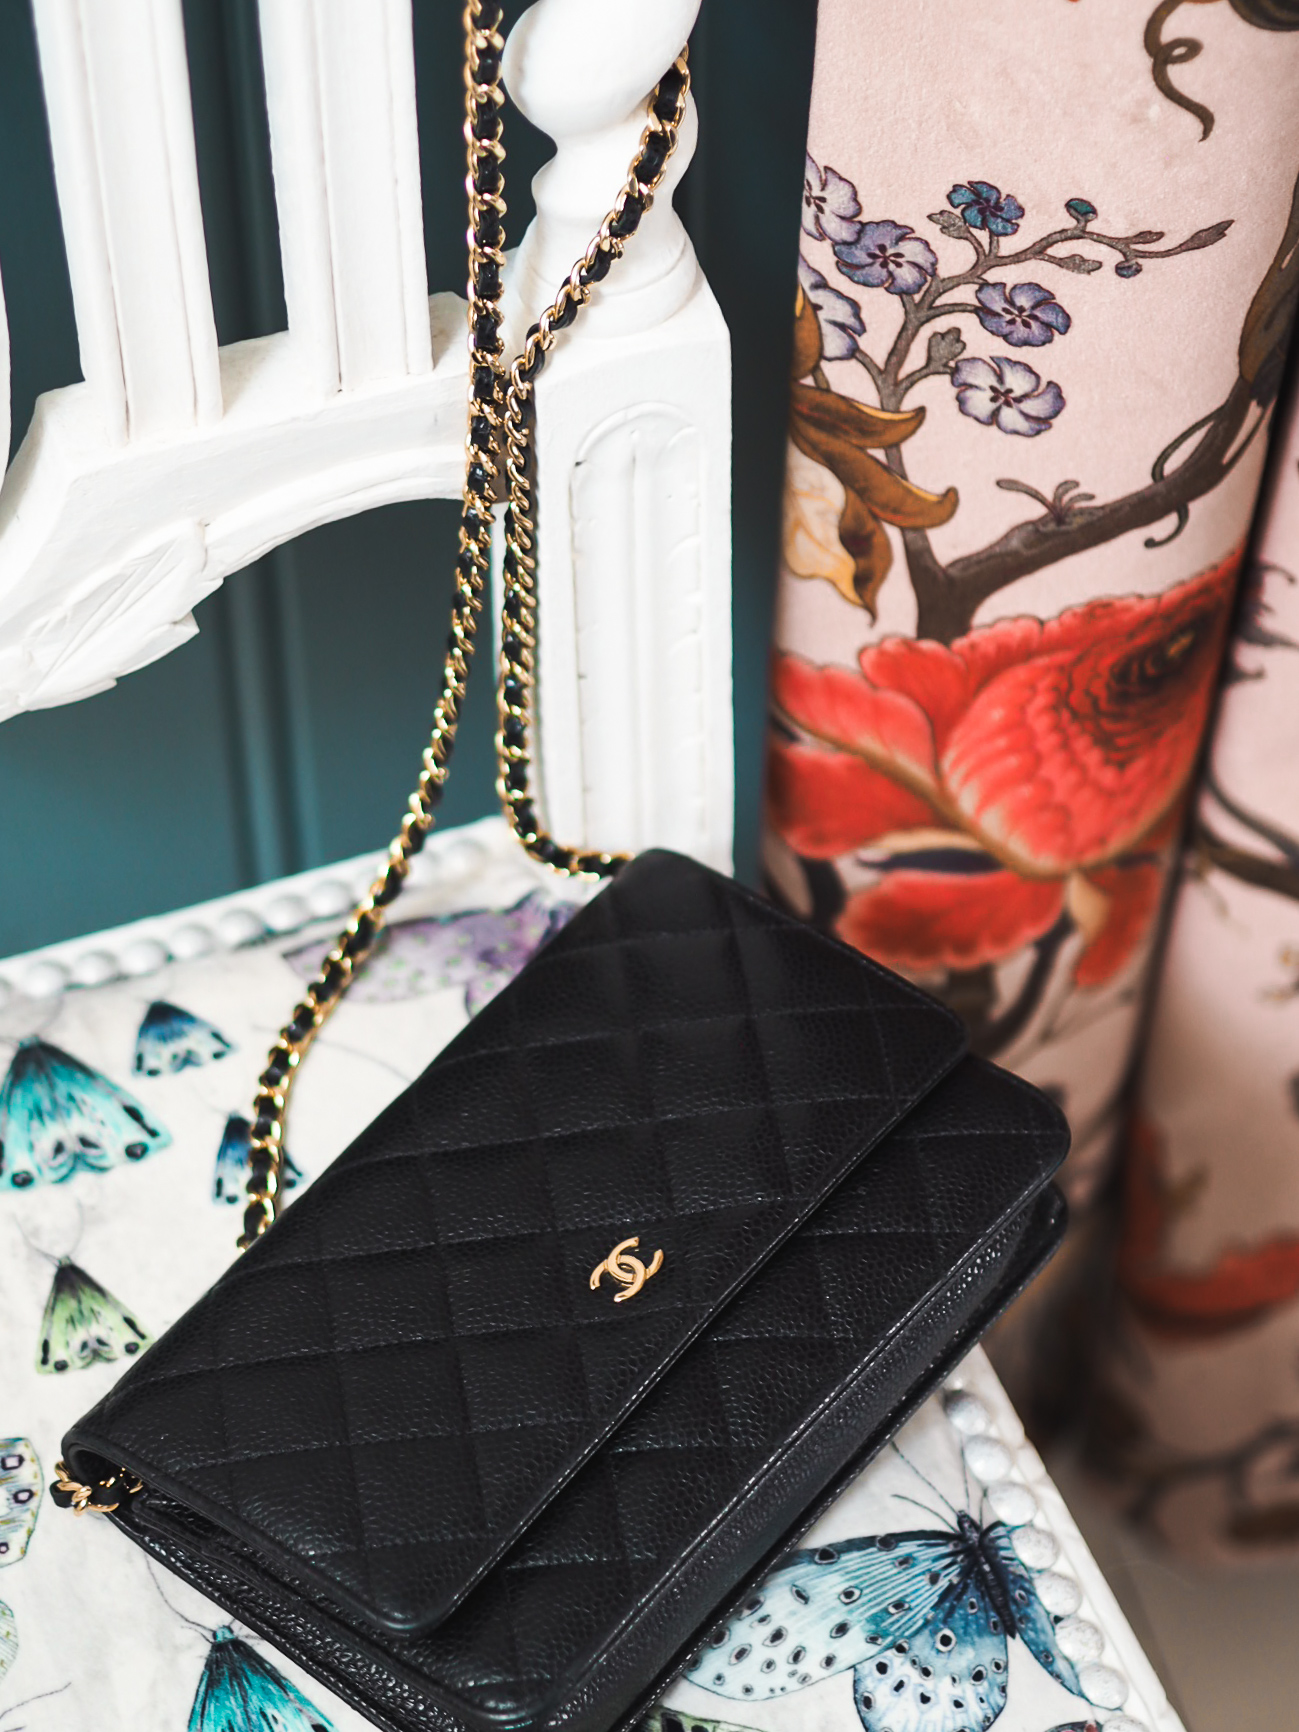 chanel wallet on chanel handbag black caviar leather fashion for lunch blog chanel WOC lambskin